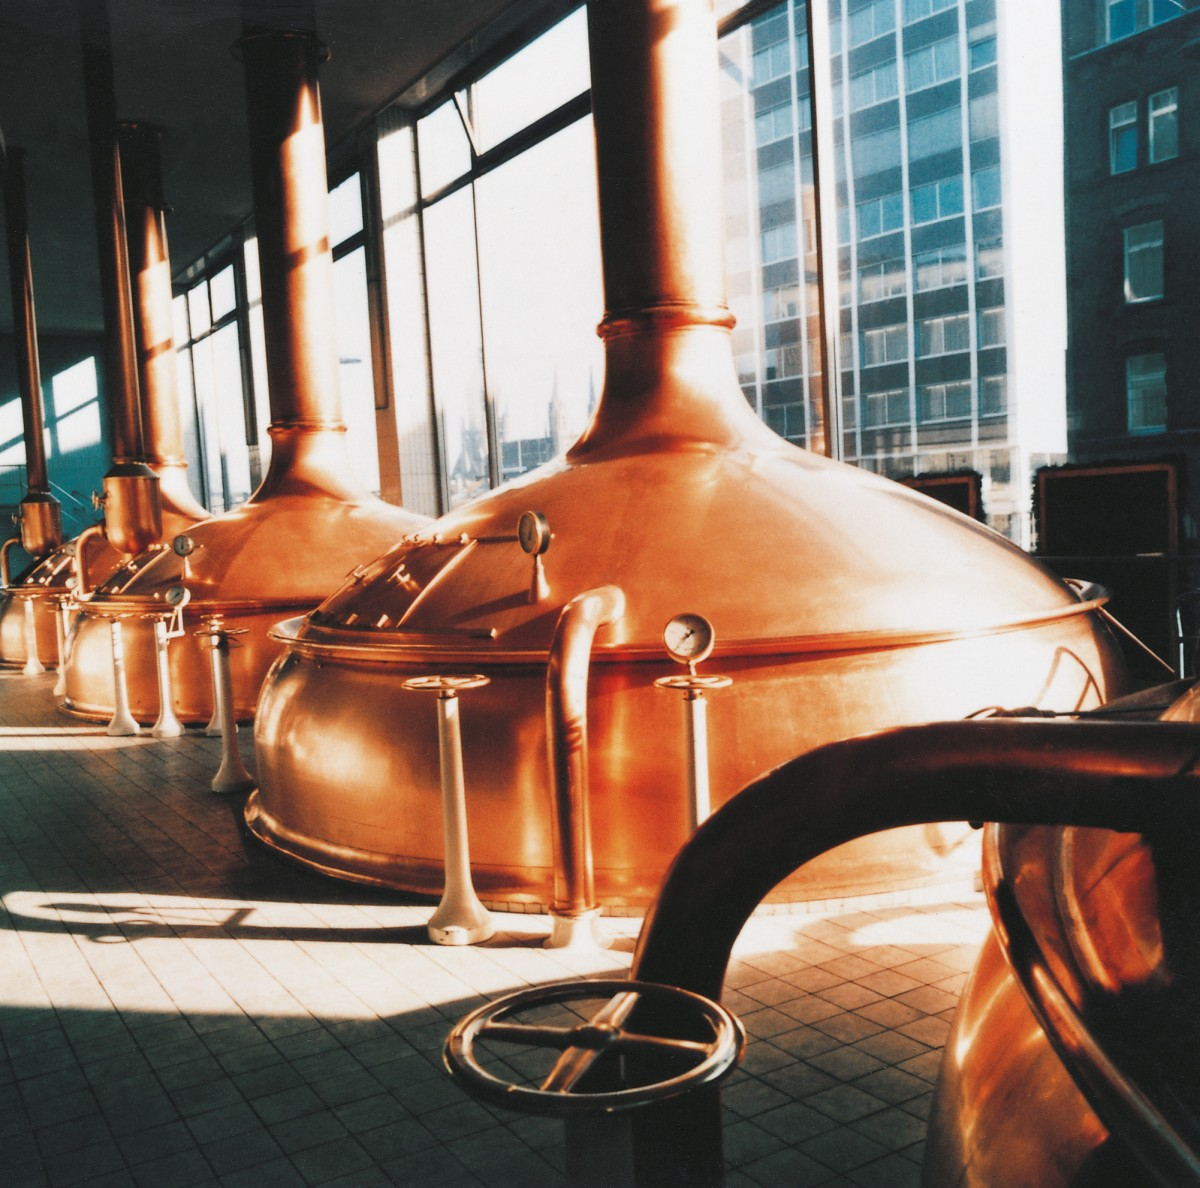 From the traditional vat to the high-tech brewery